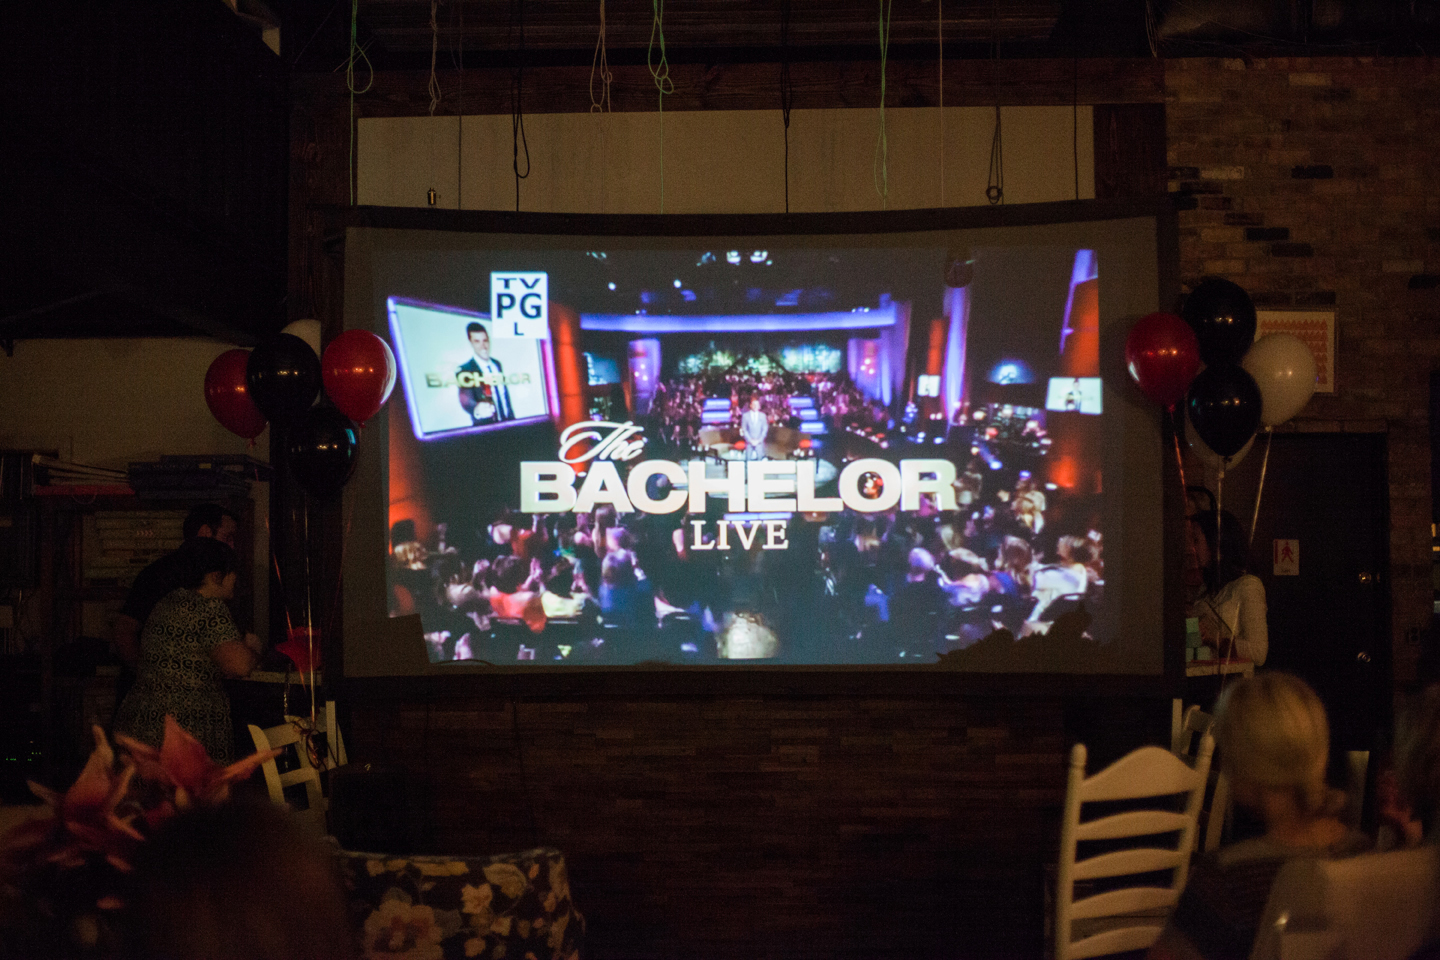 Bachelor Rose Party